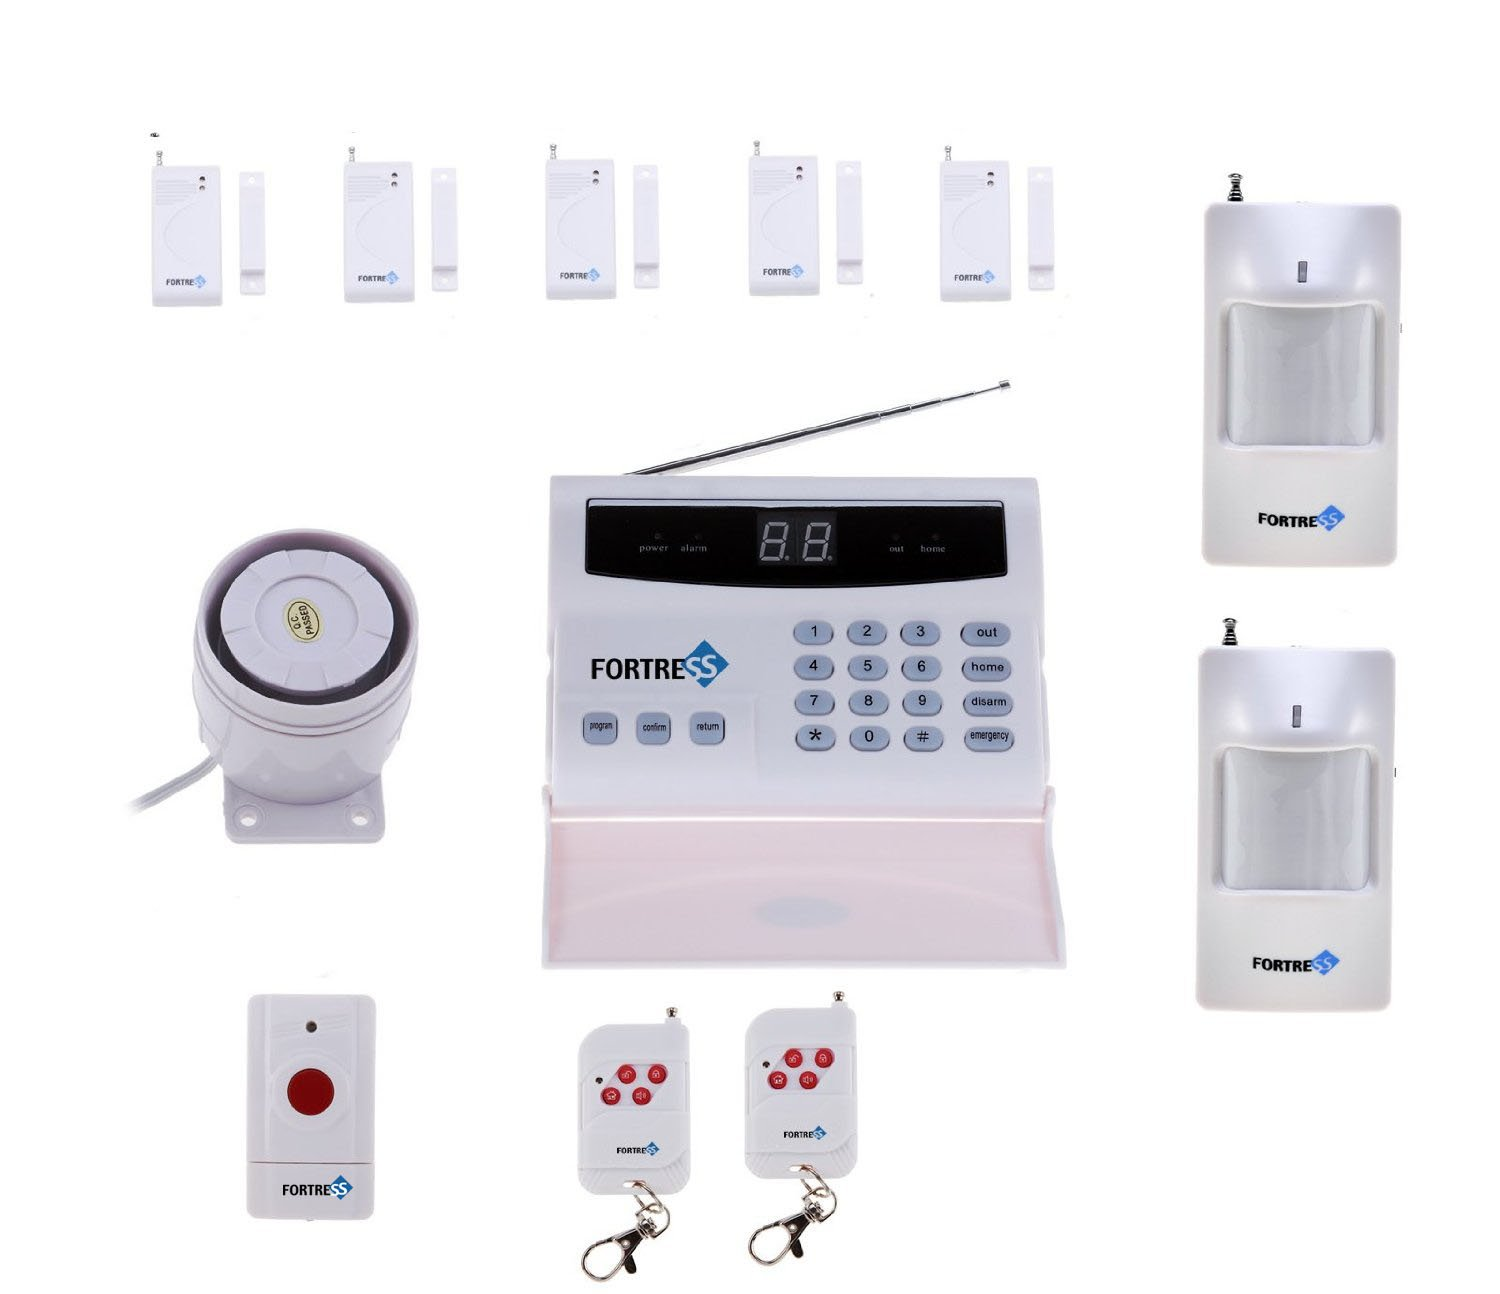 Fortress Security Store  TM  S02 B Wireless Home Security Alarm System Kit  with Auto Dial   Outdoor Siren This is another popular wireless alarm system  from. The Benefits of a Wireless Home Alarm System   Safety com